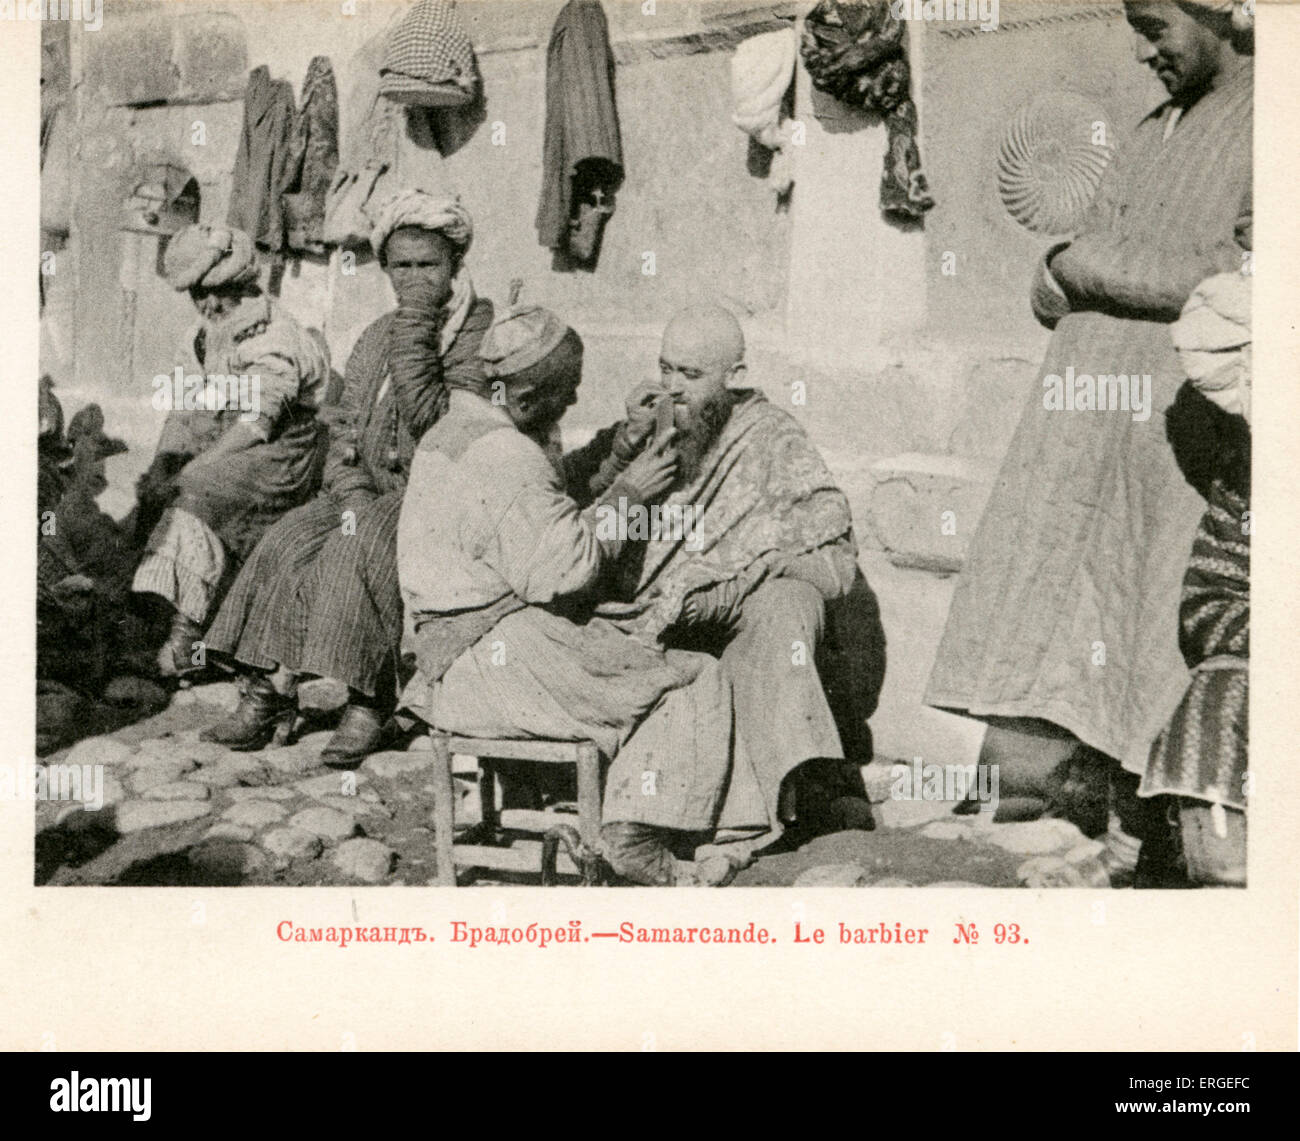 Barber plying his trade  in streets of Samarkand, c. 1900. Modern day Uzbekistan, until 1924 part of Russian Empire. - Stock Image